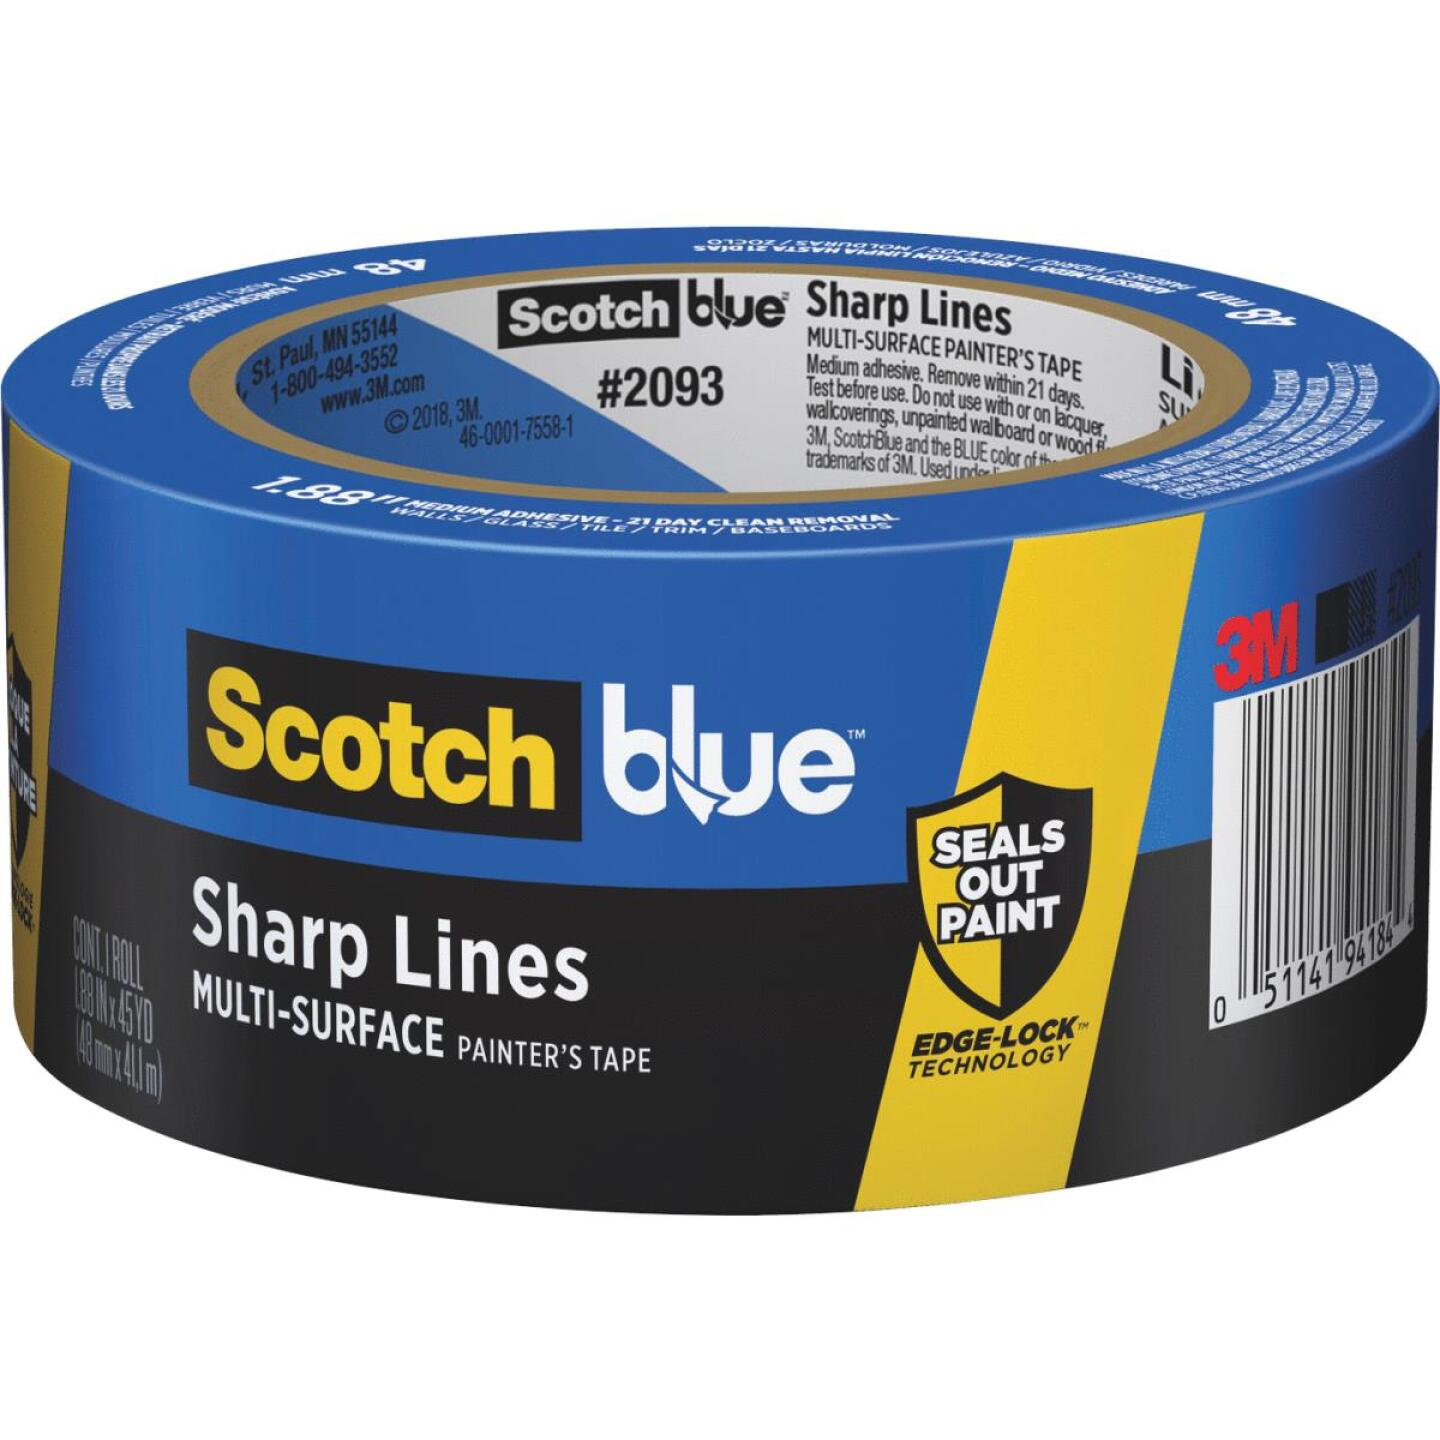 3M Scotch Blue 1.88 In. x 45 Yd. Sharp Lines Painter's Tape Image 1